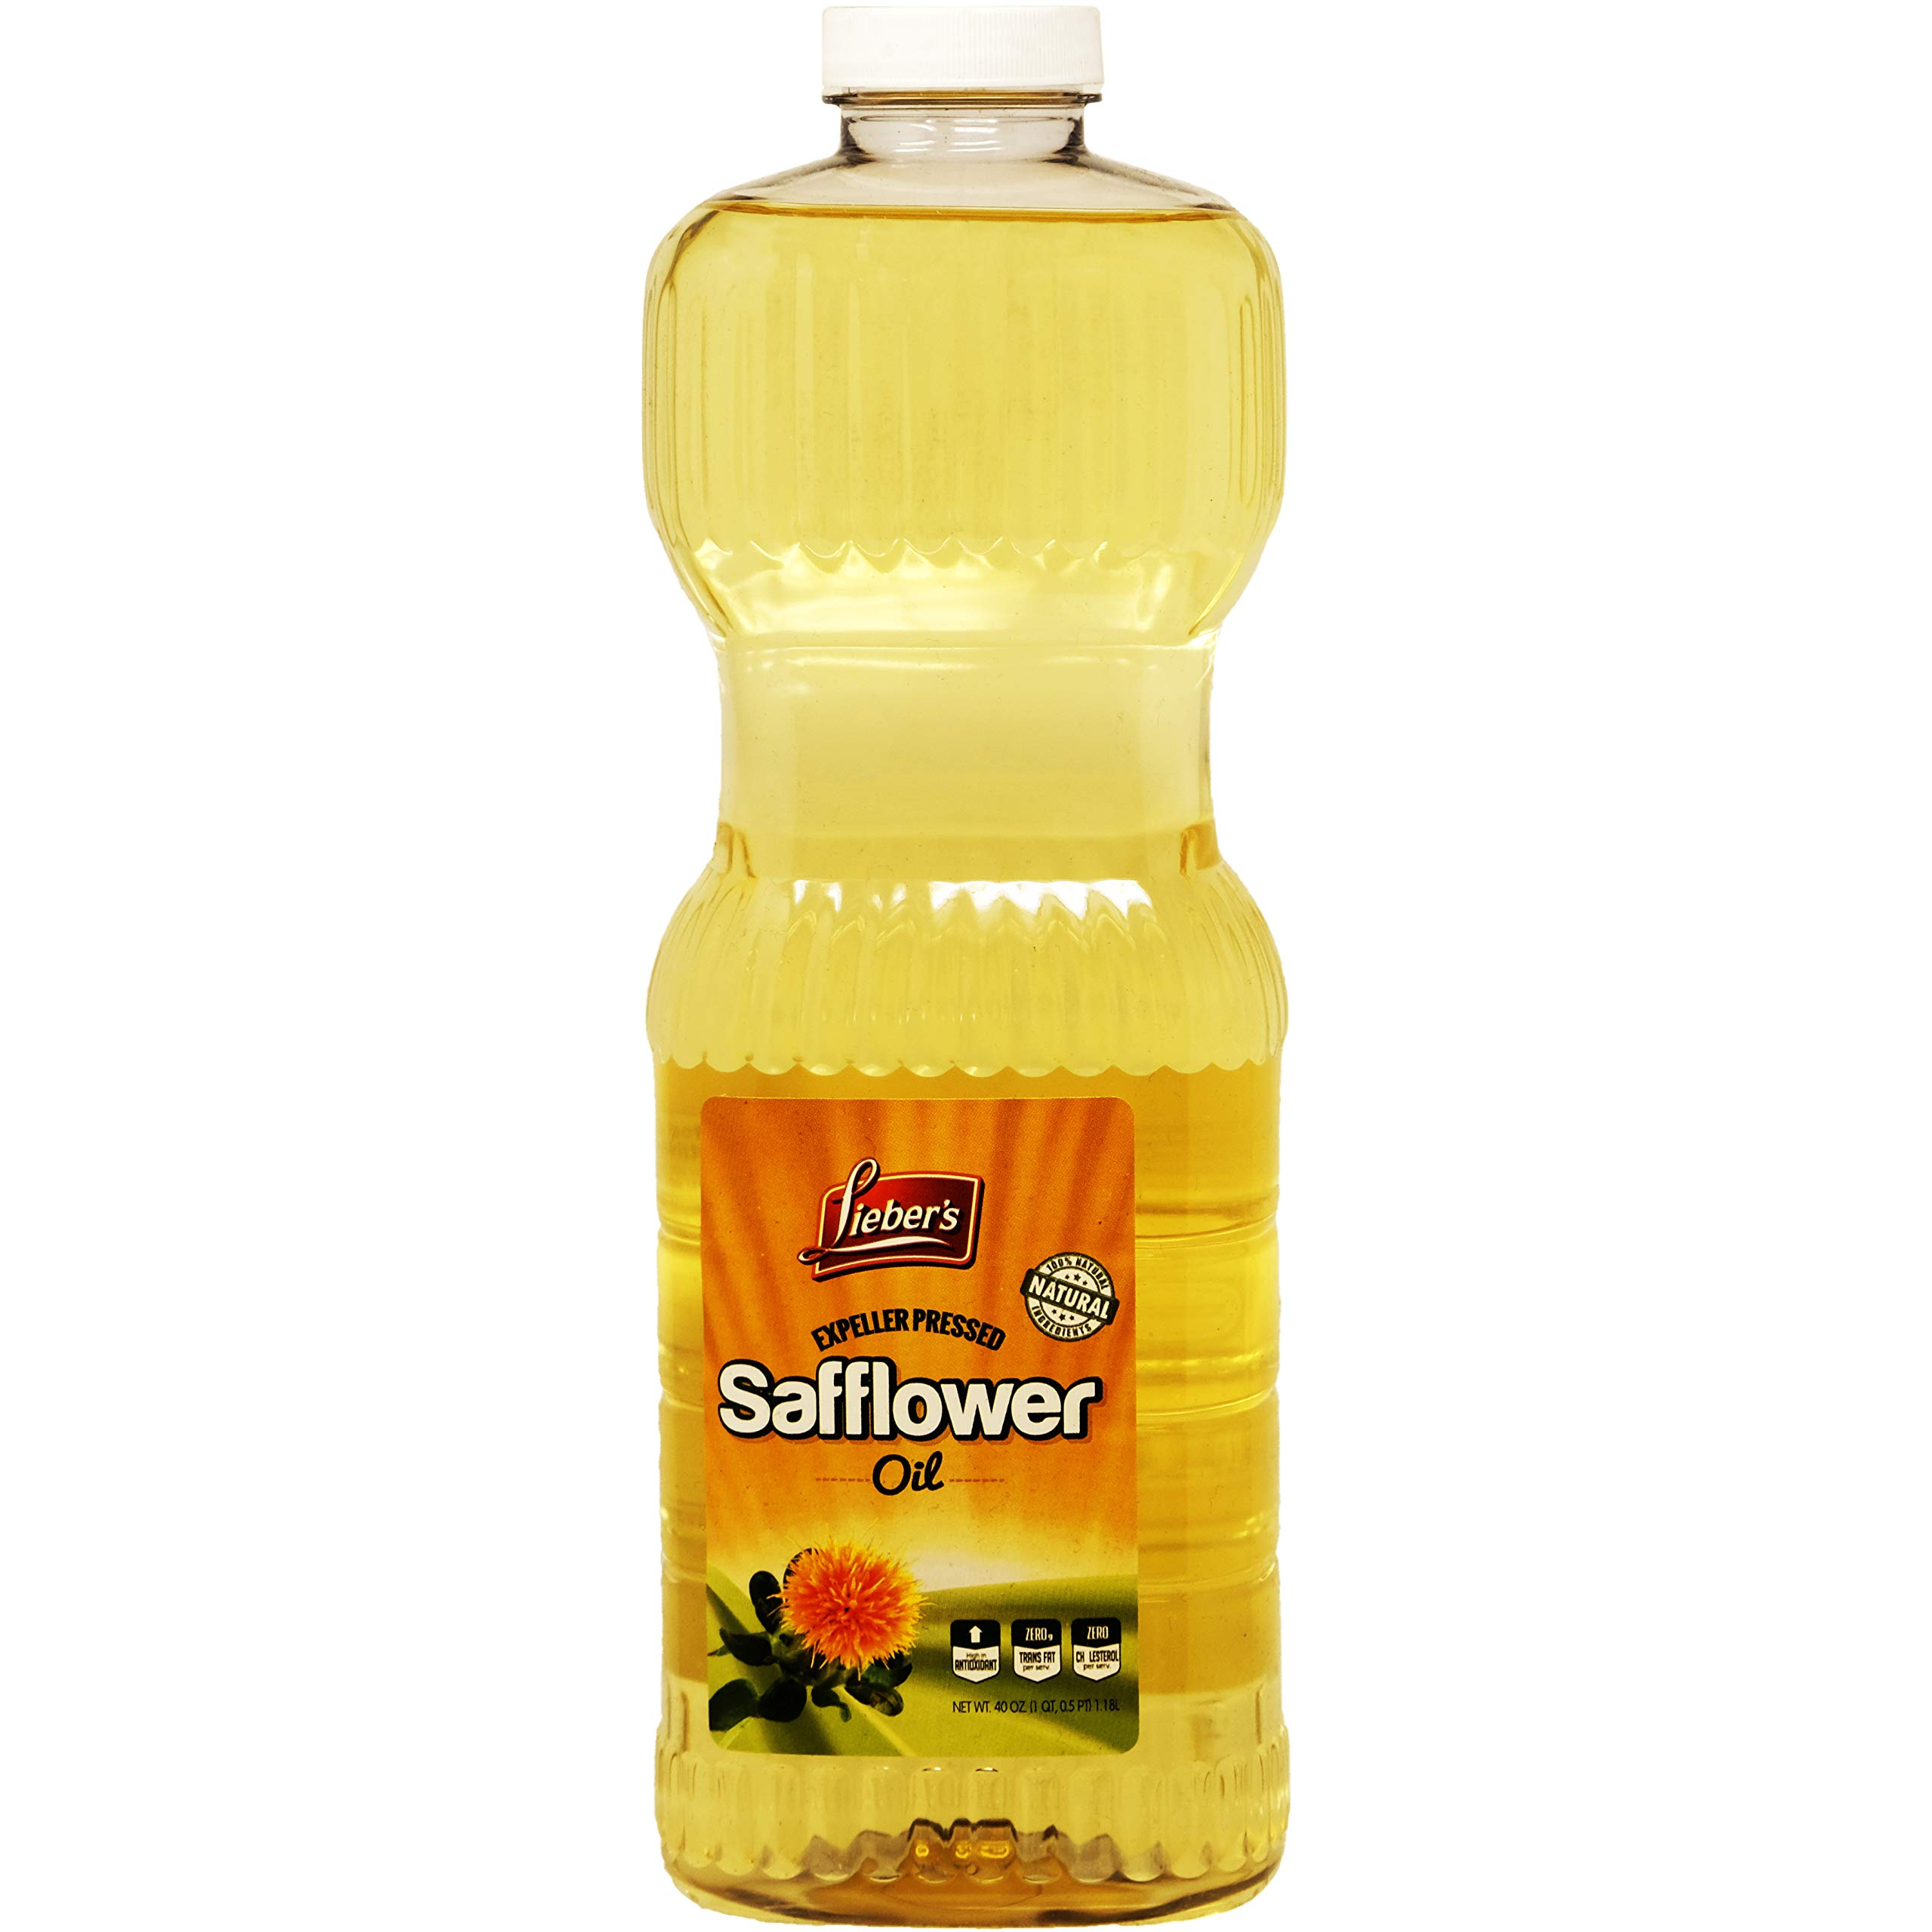 Safflower Oil, Kosher, 40 Ounce Bottle For Frying Baking And Salad No Cholesterol Low In Saturated Fat by Lieber's